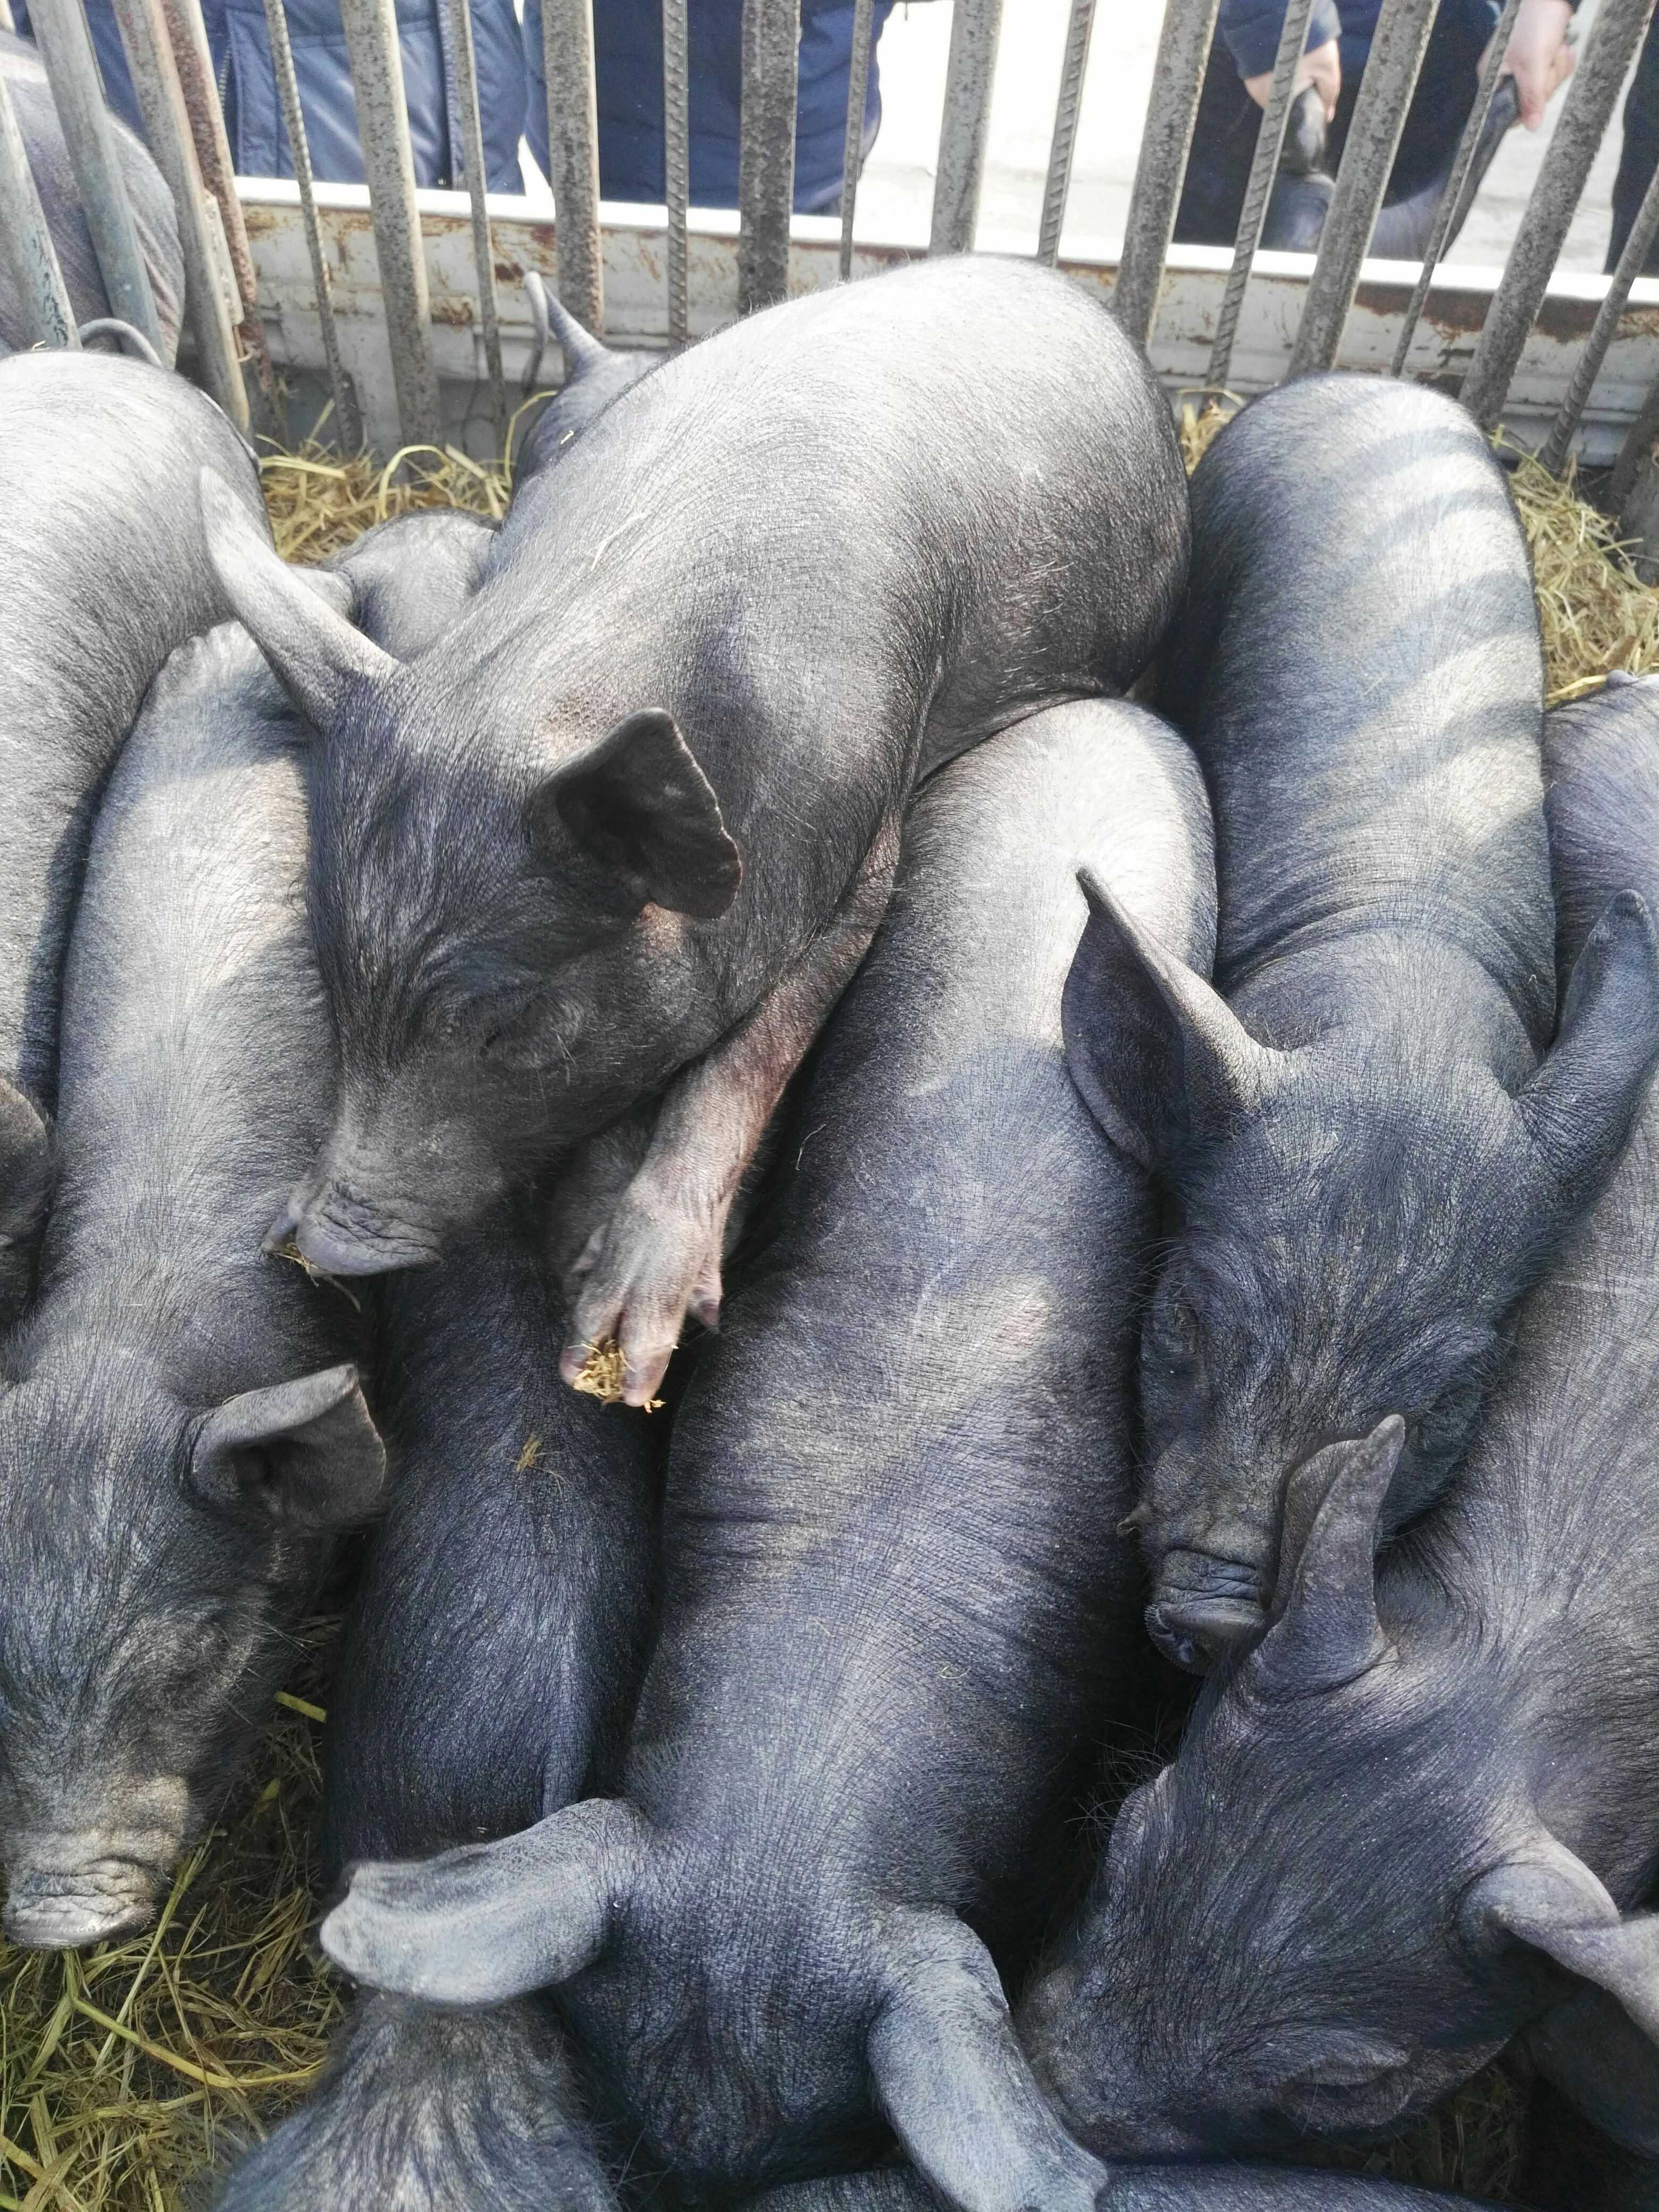 Small boar, small sow, three Yuan Miscellaneous, pet pig, black pig and so on